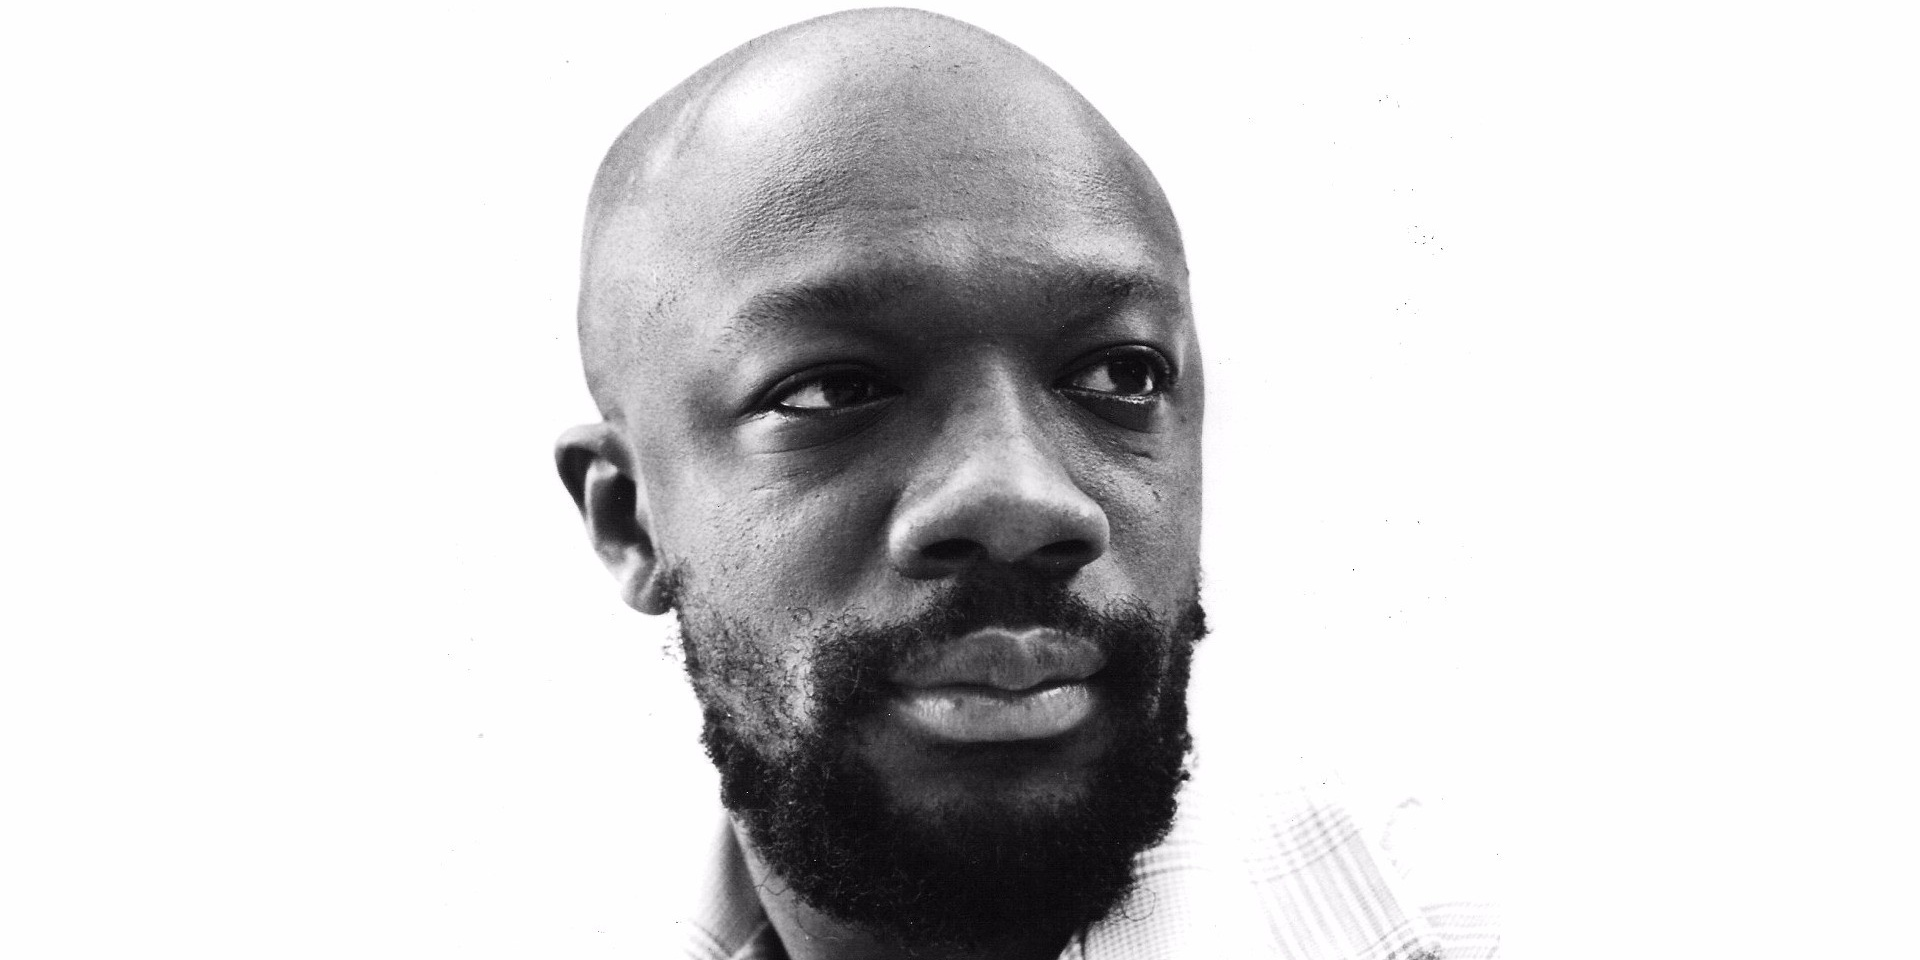 Essentials: Isaac Hayes' Hot Buttered Soul (1969)